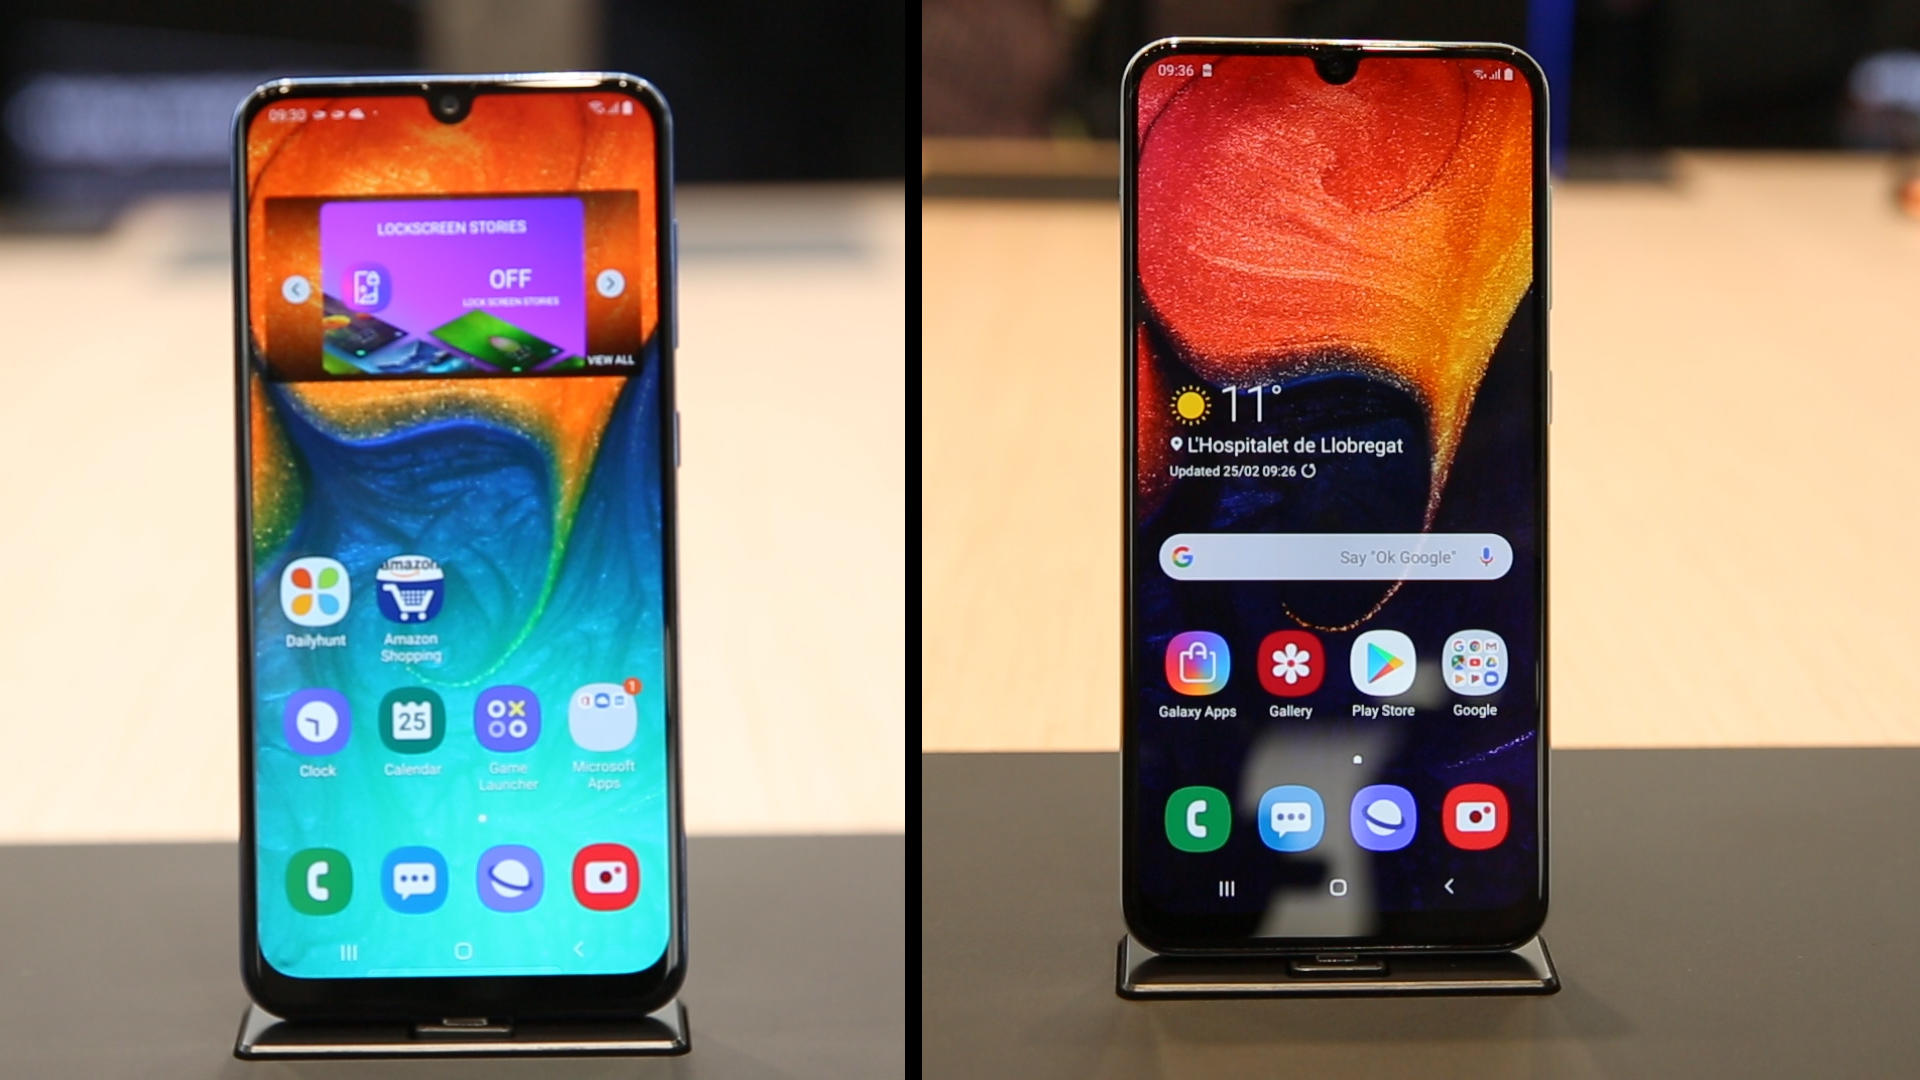 Video: Snap serious selfies with Samsung's Galaxy A30 and A50